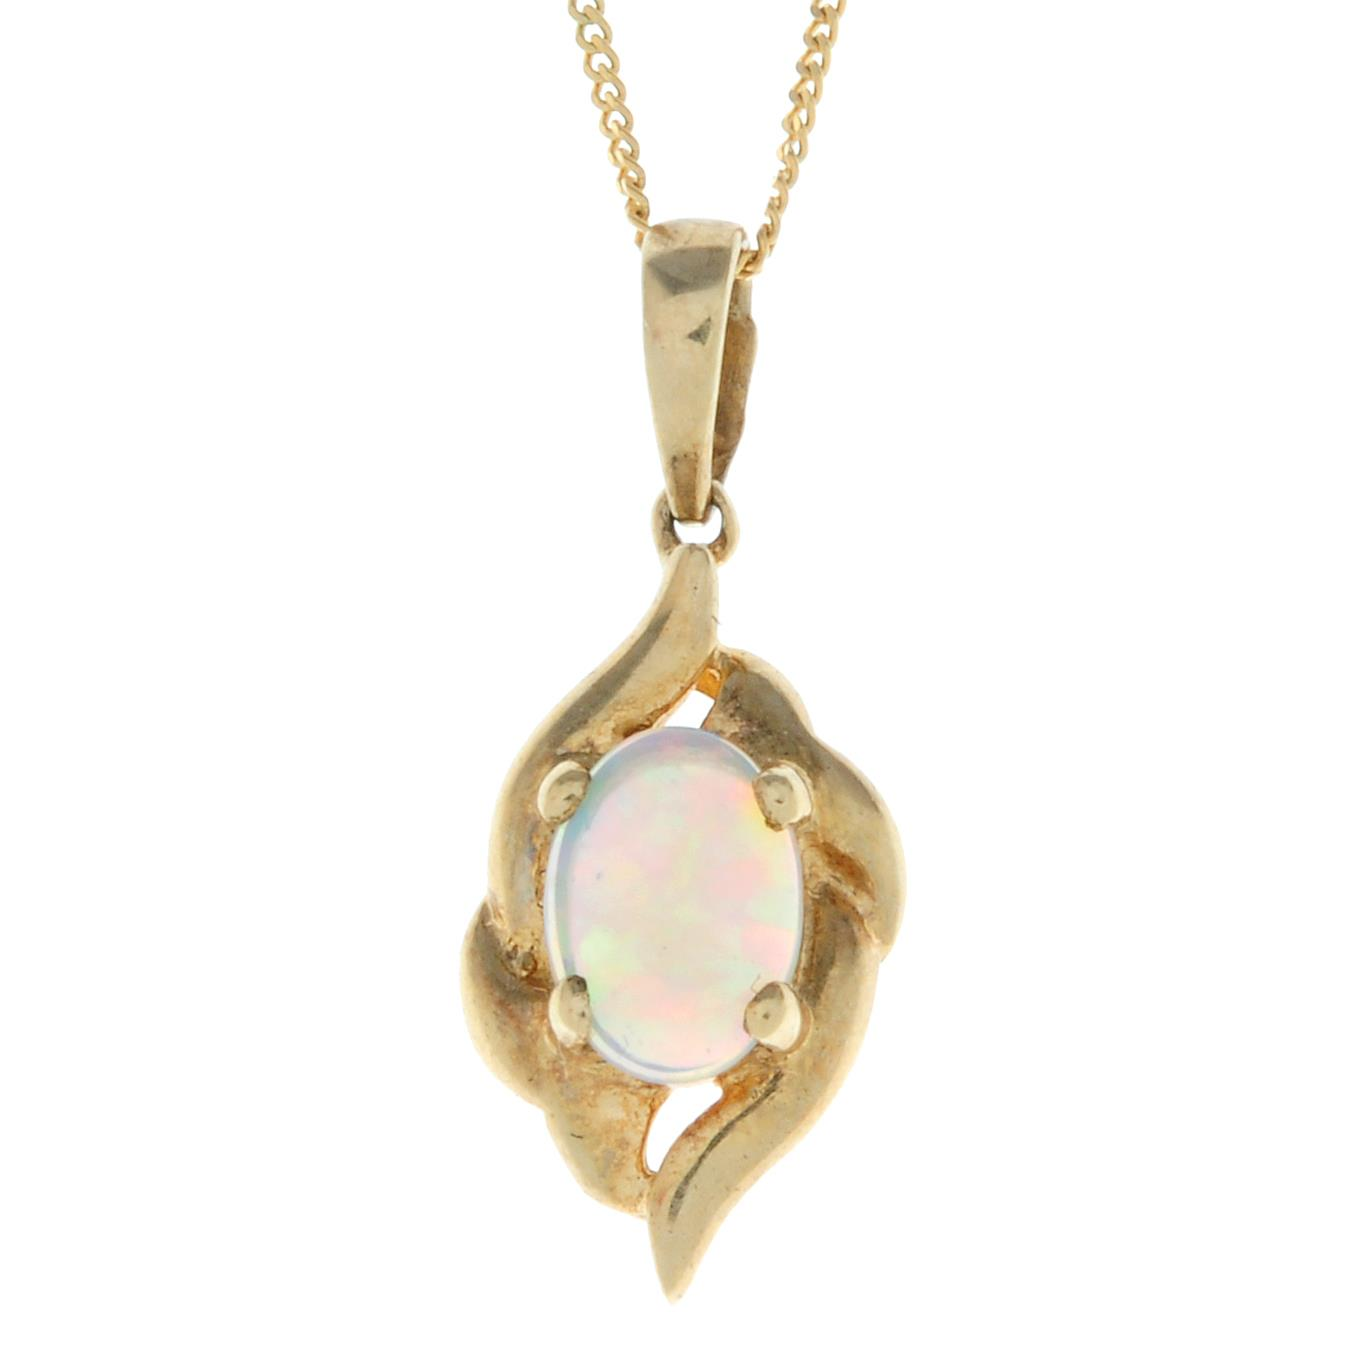 A 9ct gold opal pendant, with chain.Hallmarks for Sheffield.Length of pendant 2.1cms.